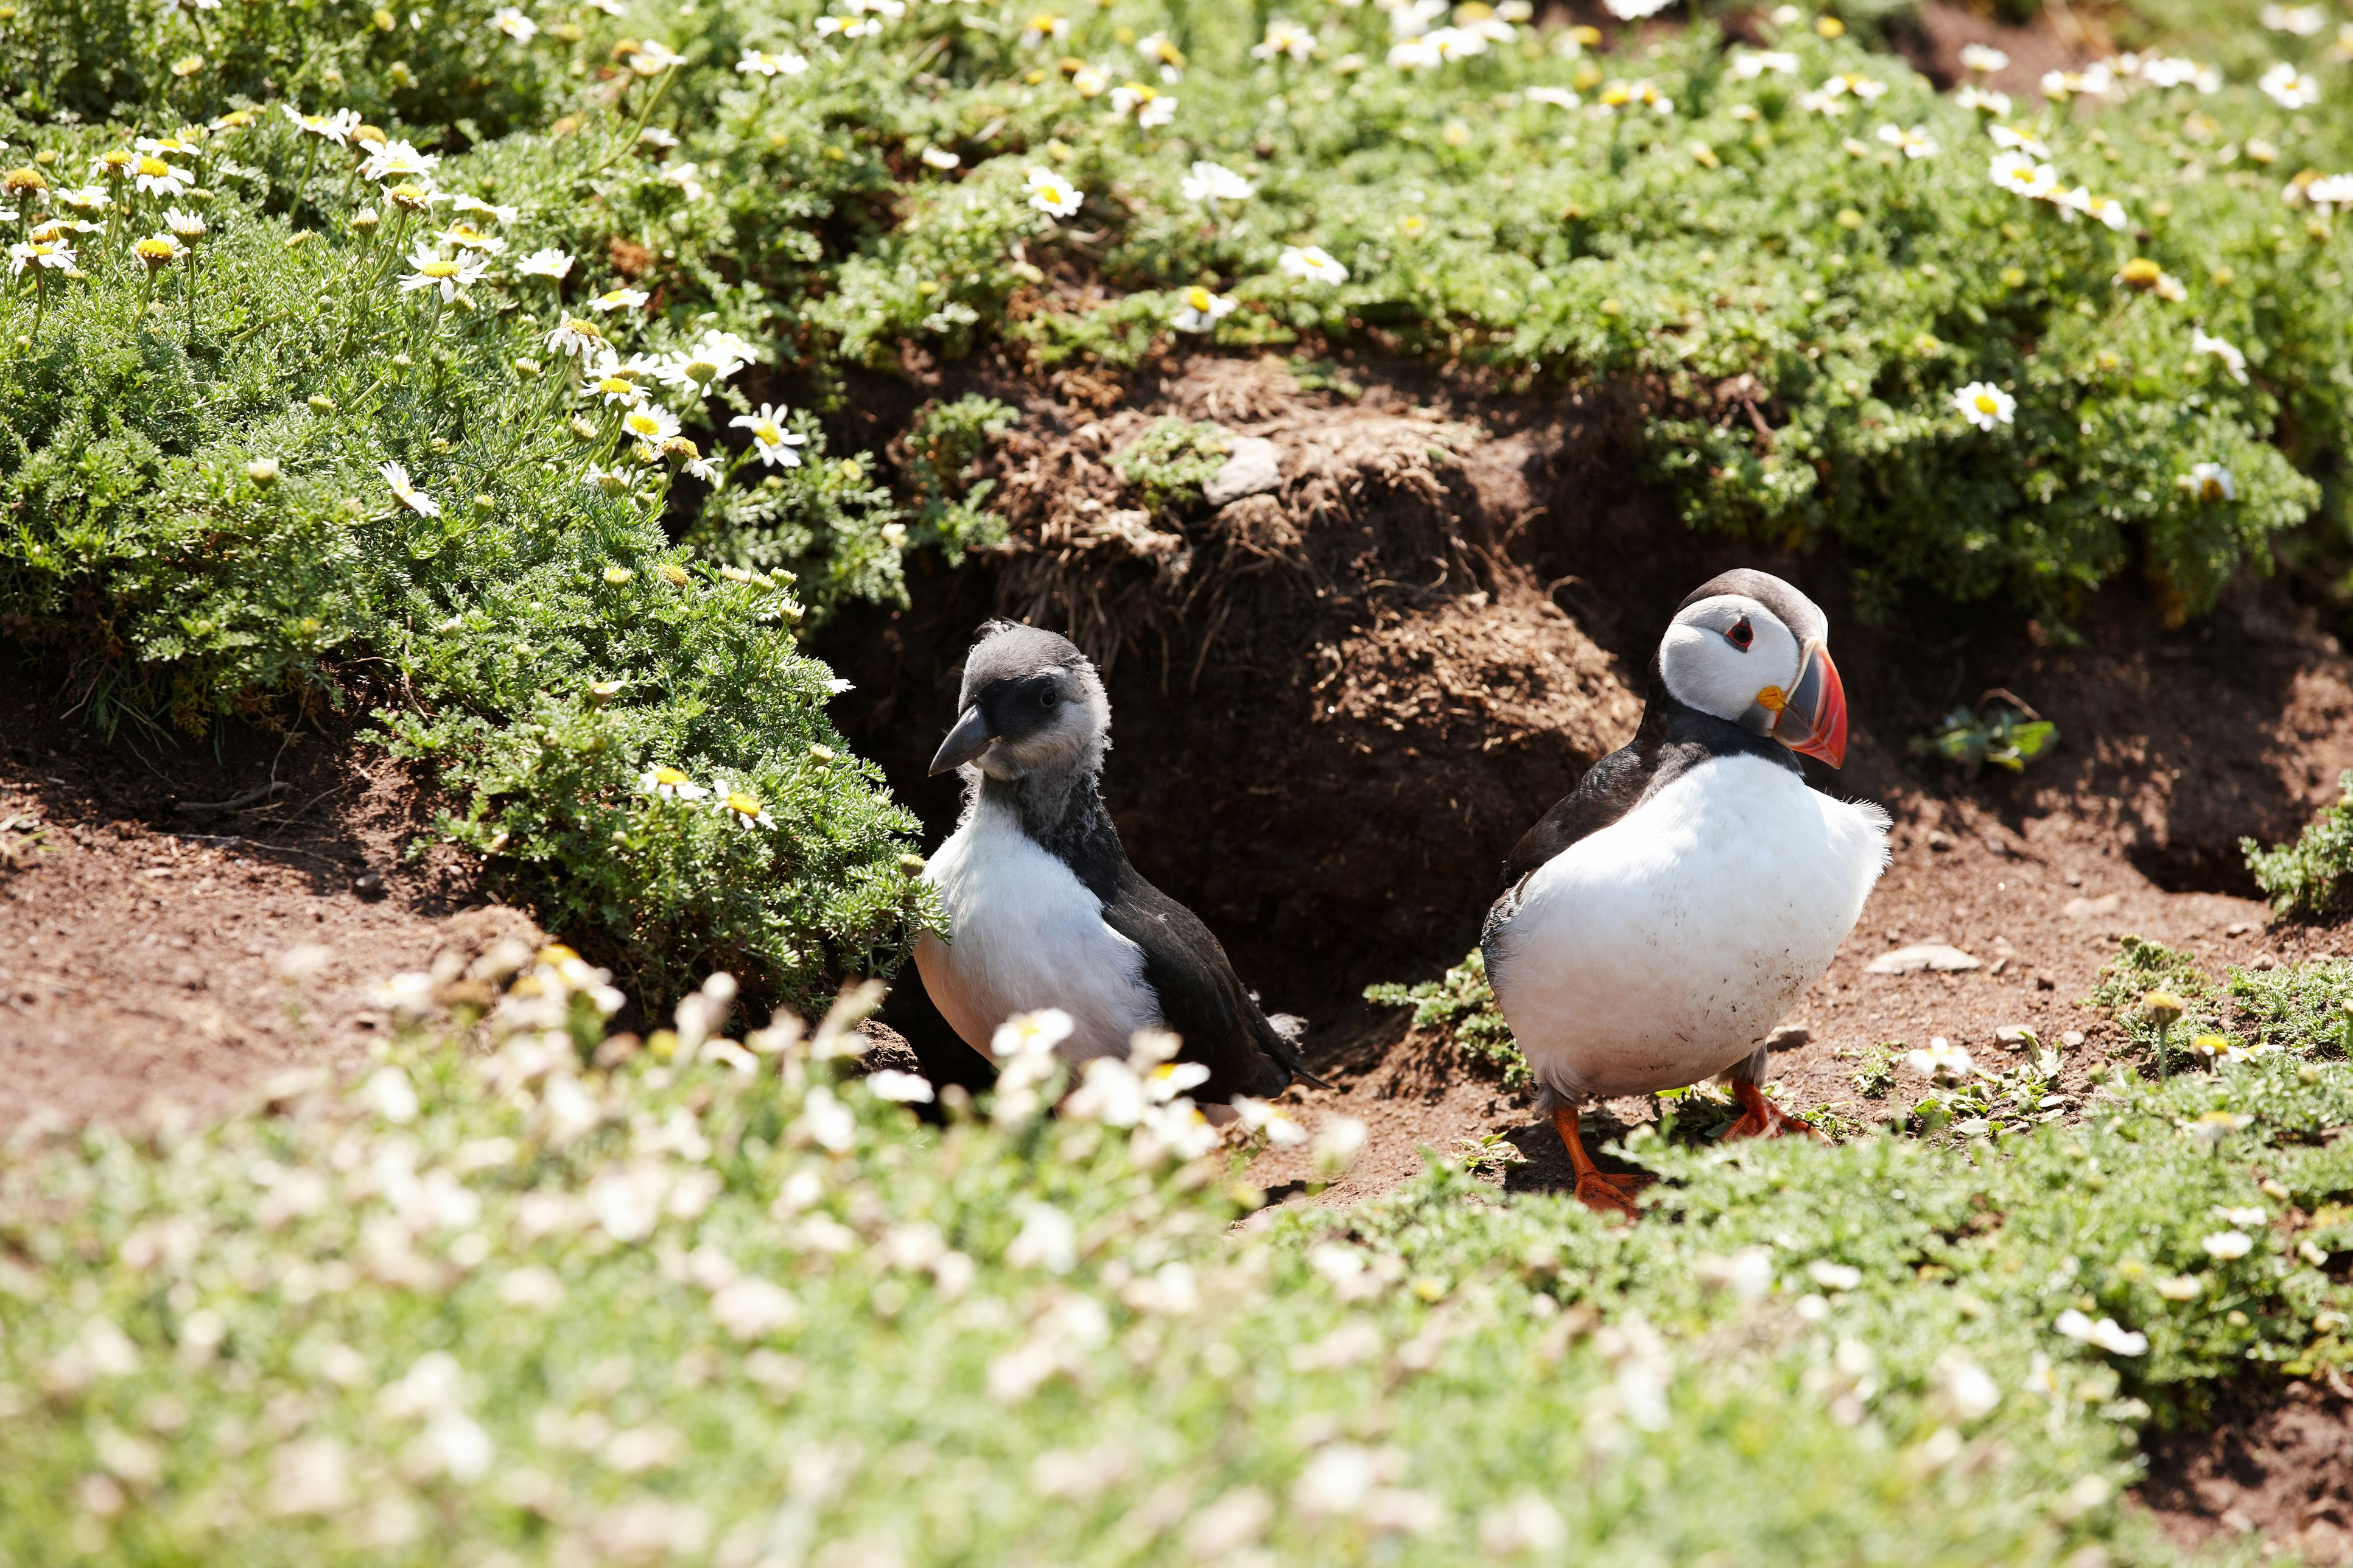 Young immature puffin outside burrow with adult parent.